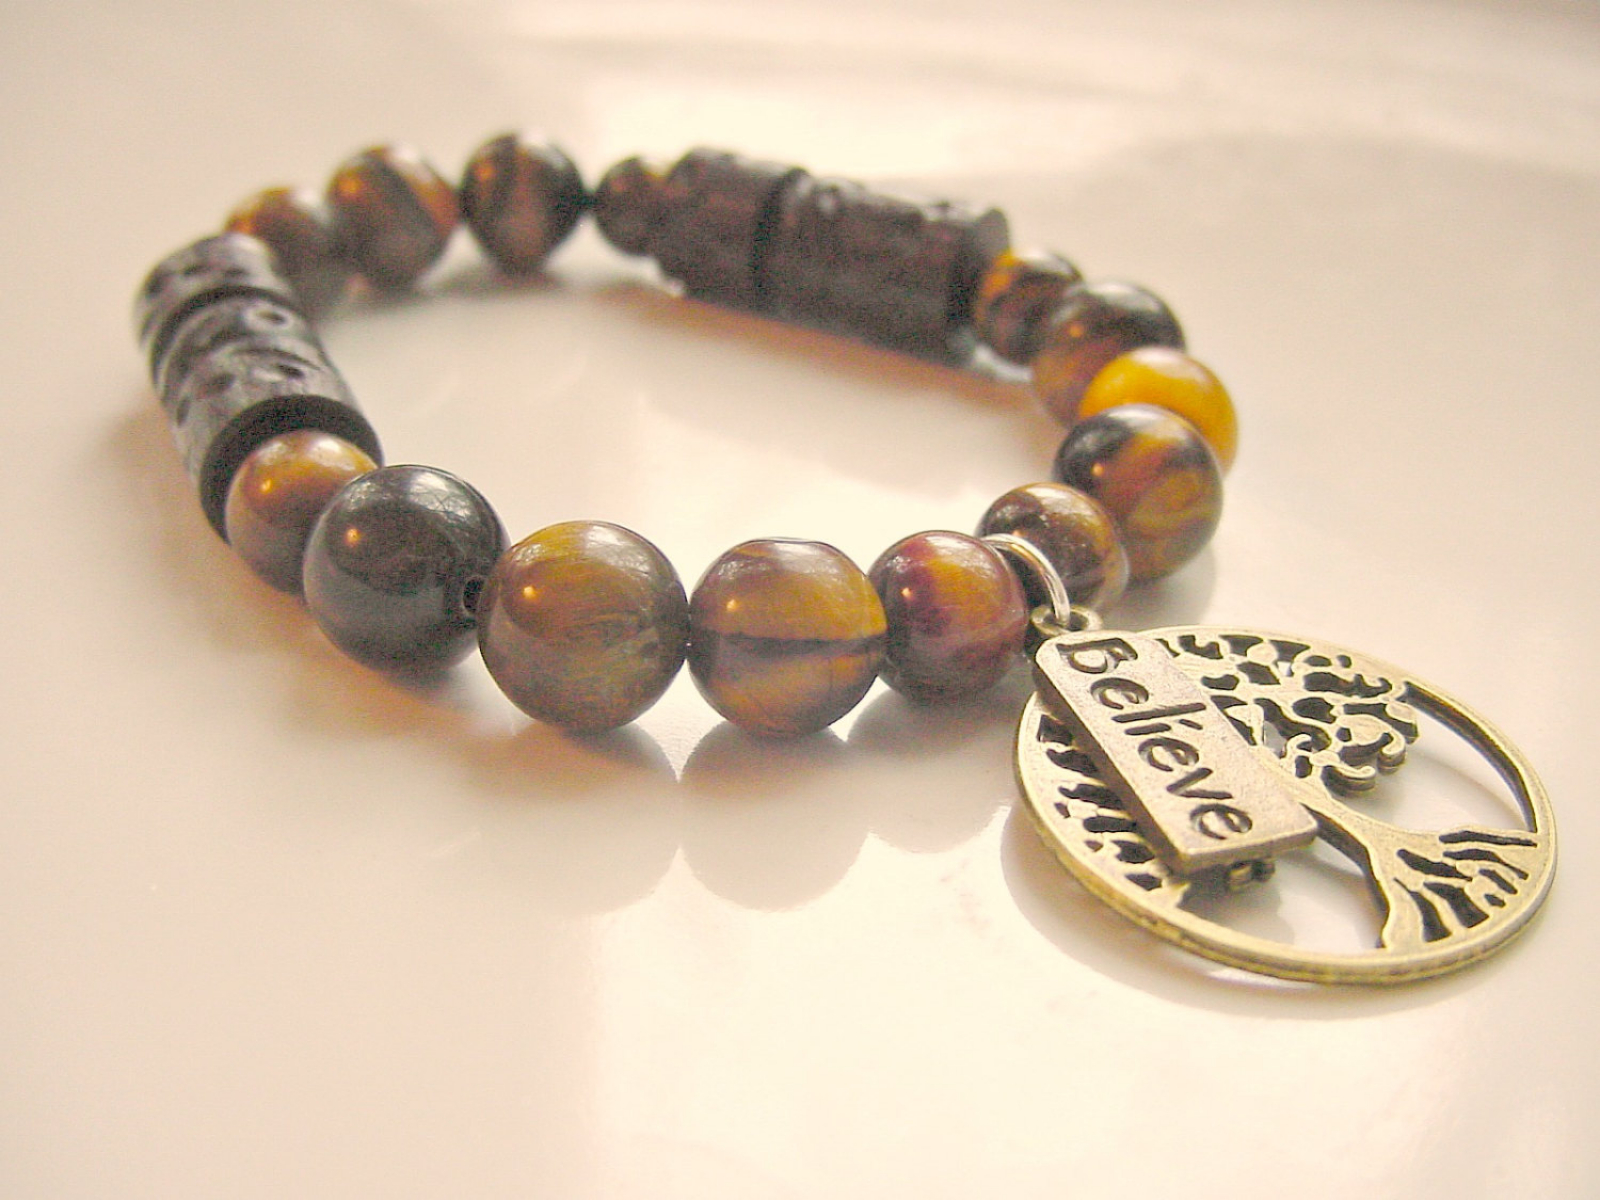 go intention protection strength for tigers bracelet stamina courage stretch vitality prosperity tone it grounding can reiki pyrite infused energy clarity manifestation store eye do